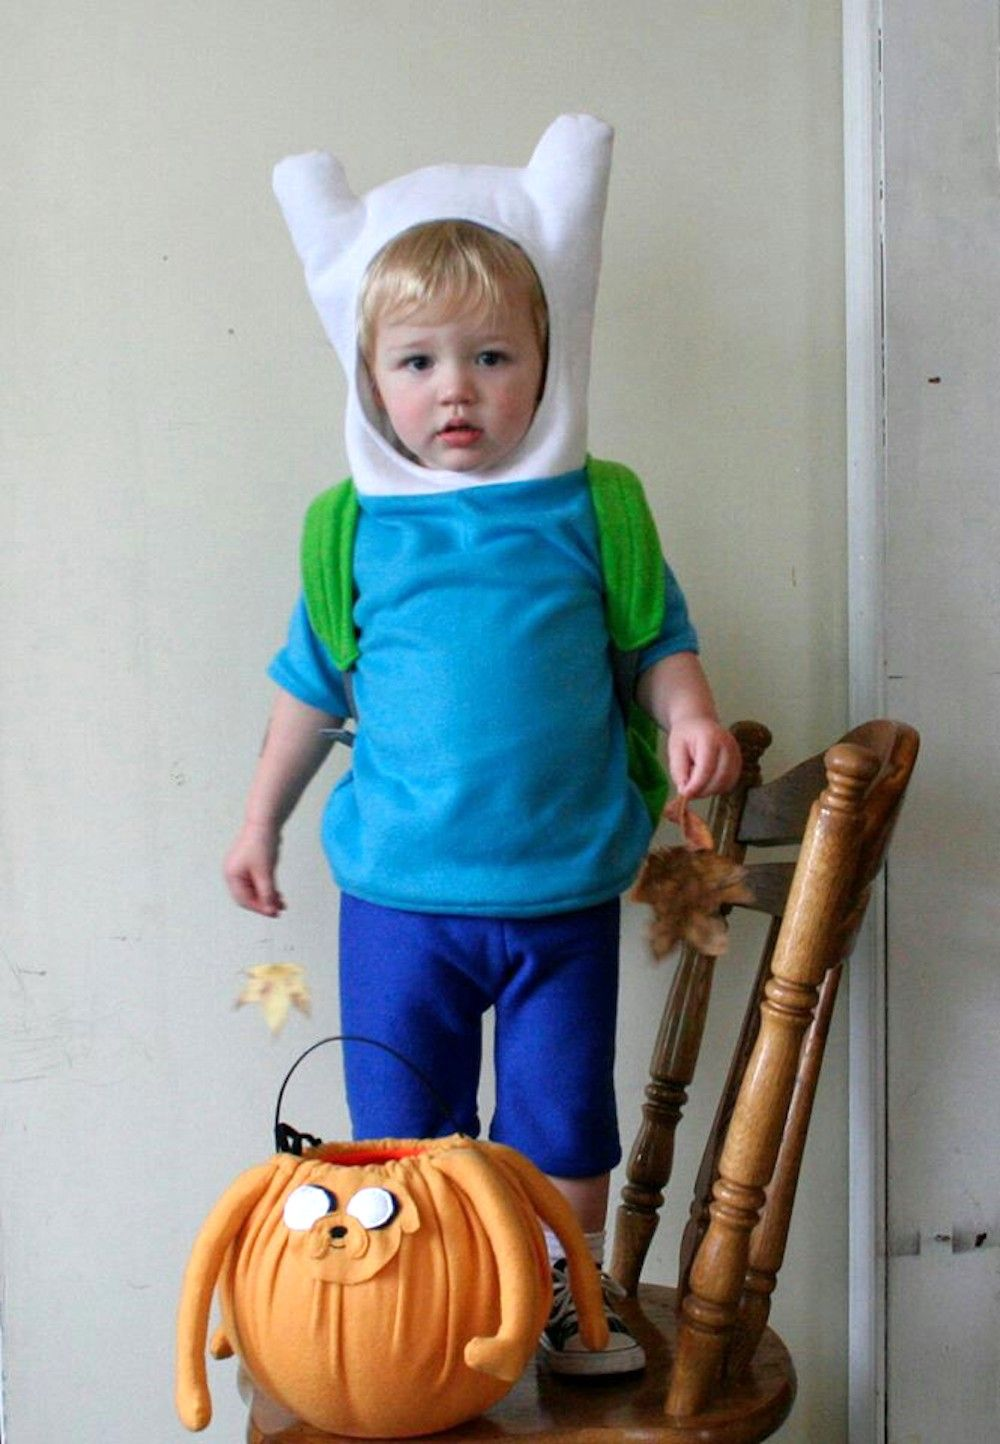 Geeky Halloween costumes for kids Finn the Human from Adventure Time  sc 1 st  Pinterest & 11 geeky Halloween costumes for kids. Parenting done right ...